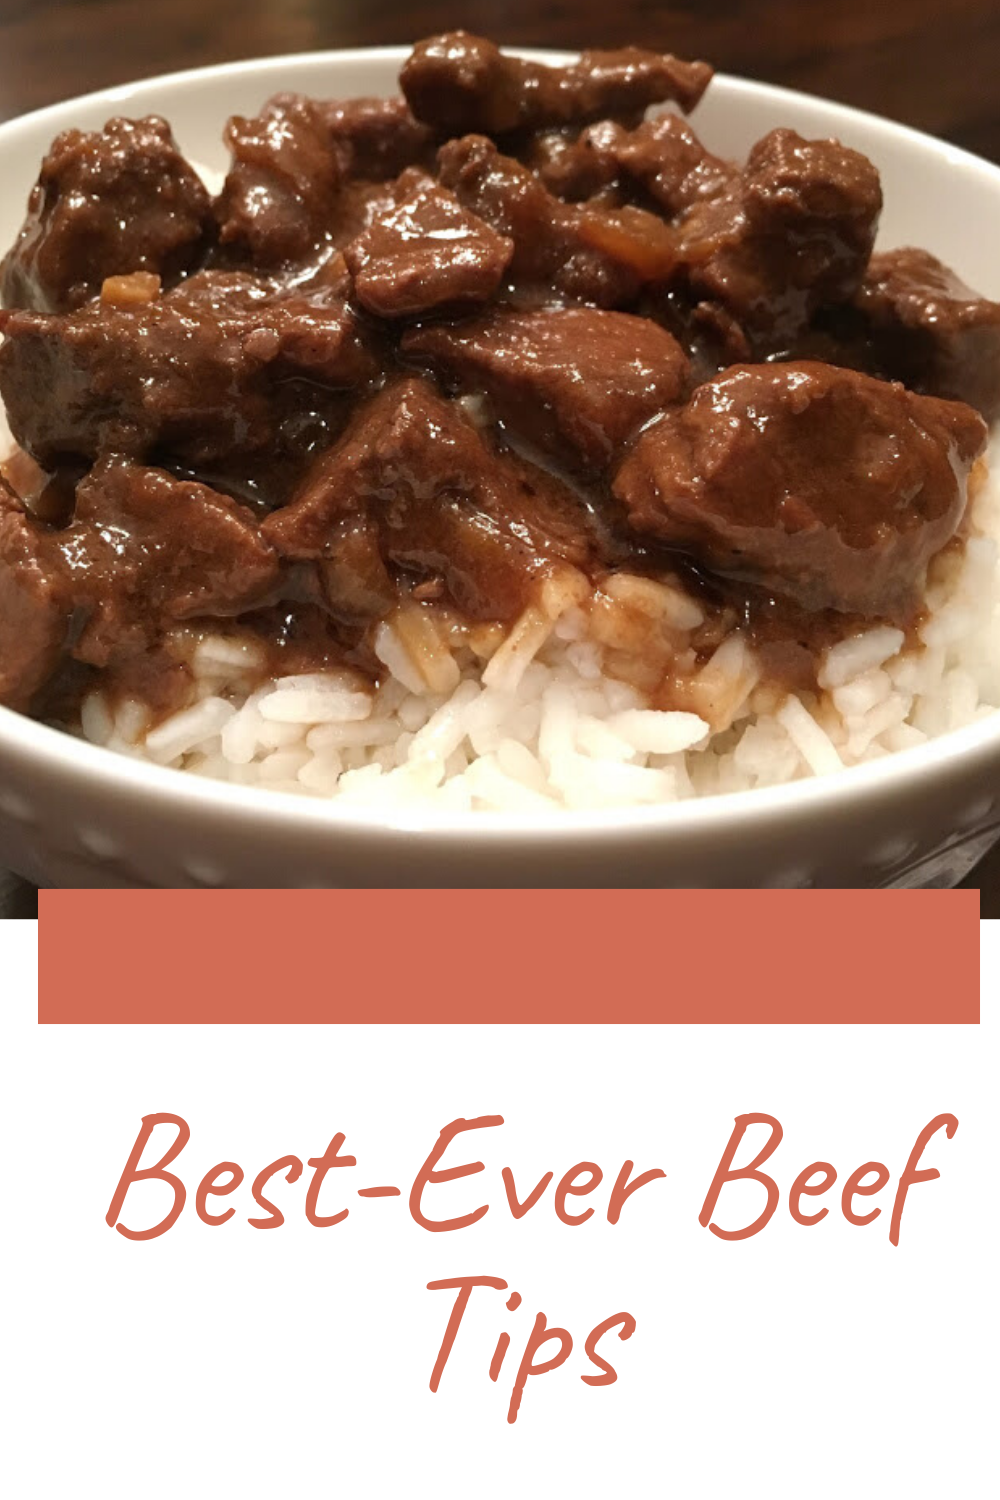 Best Ever Beef Tips Easy Cooking Recipes Recipe Beef Tips And Rice Beef Tips Crockpot Recipes Slow Cooker